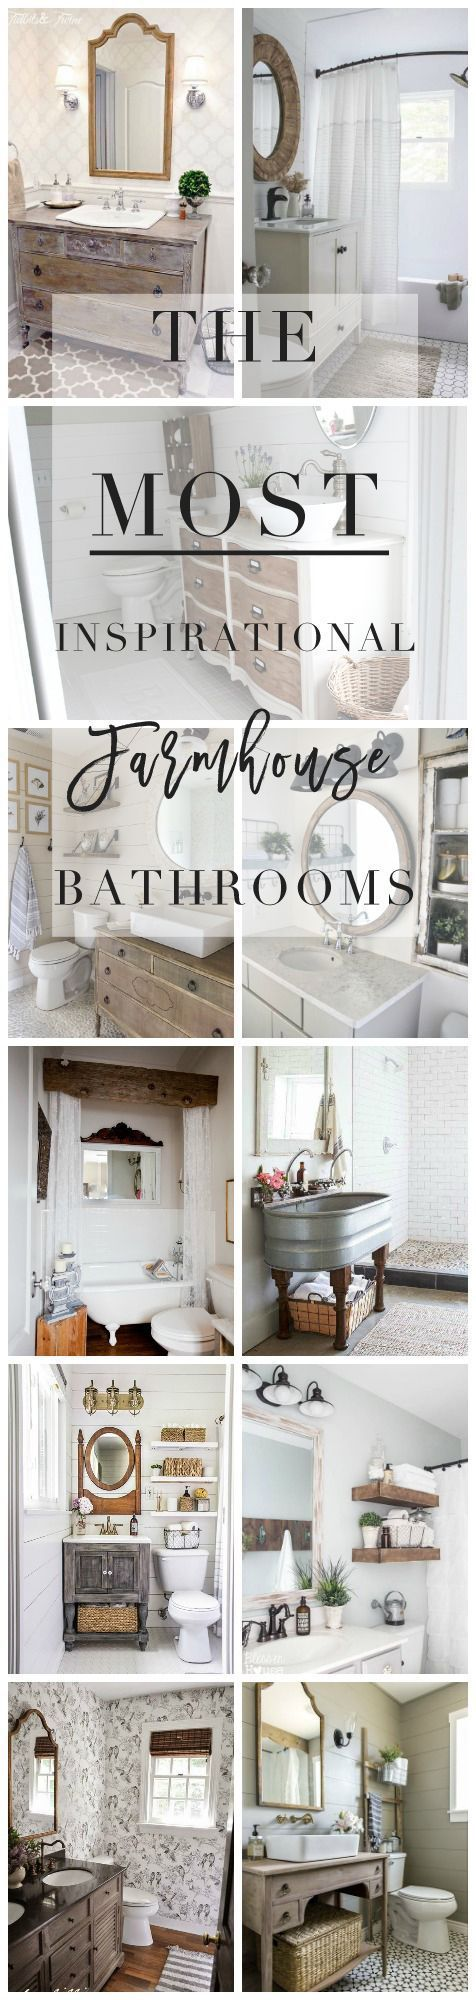 farmhouse / bathrooms / inspiration / decor / industrial / rustic / bathroom decor / bathroom styling